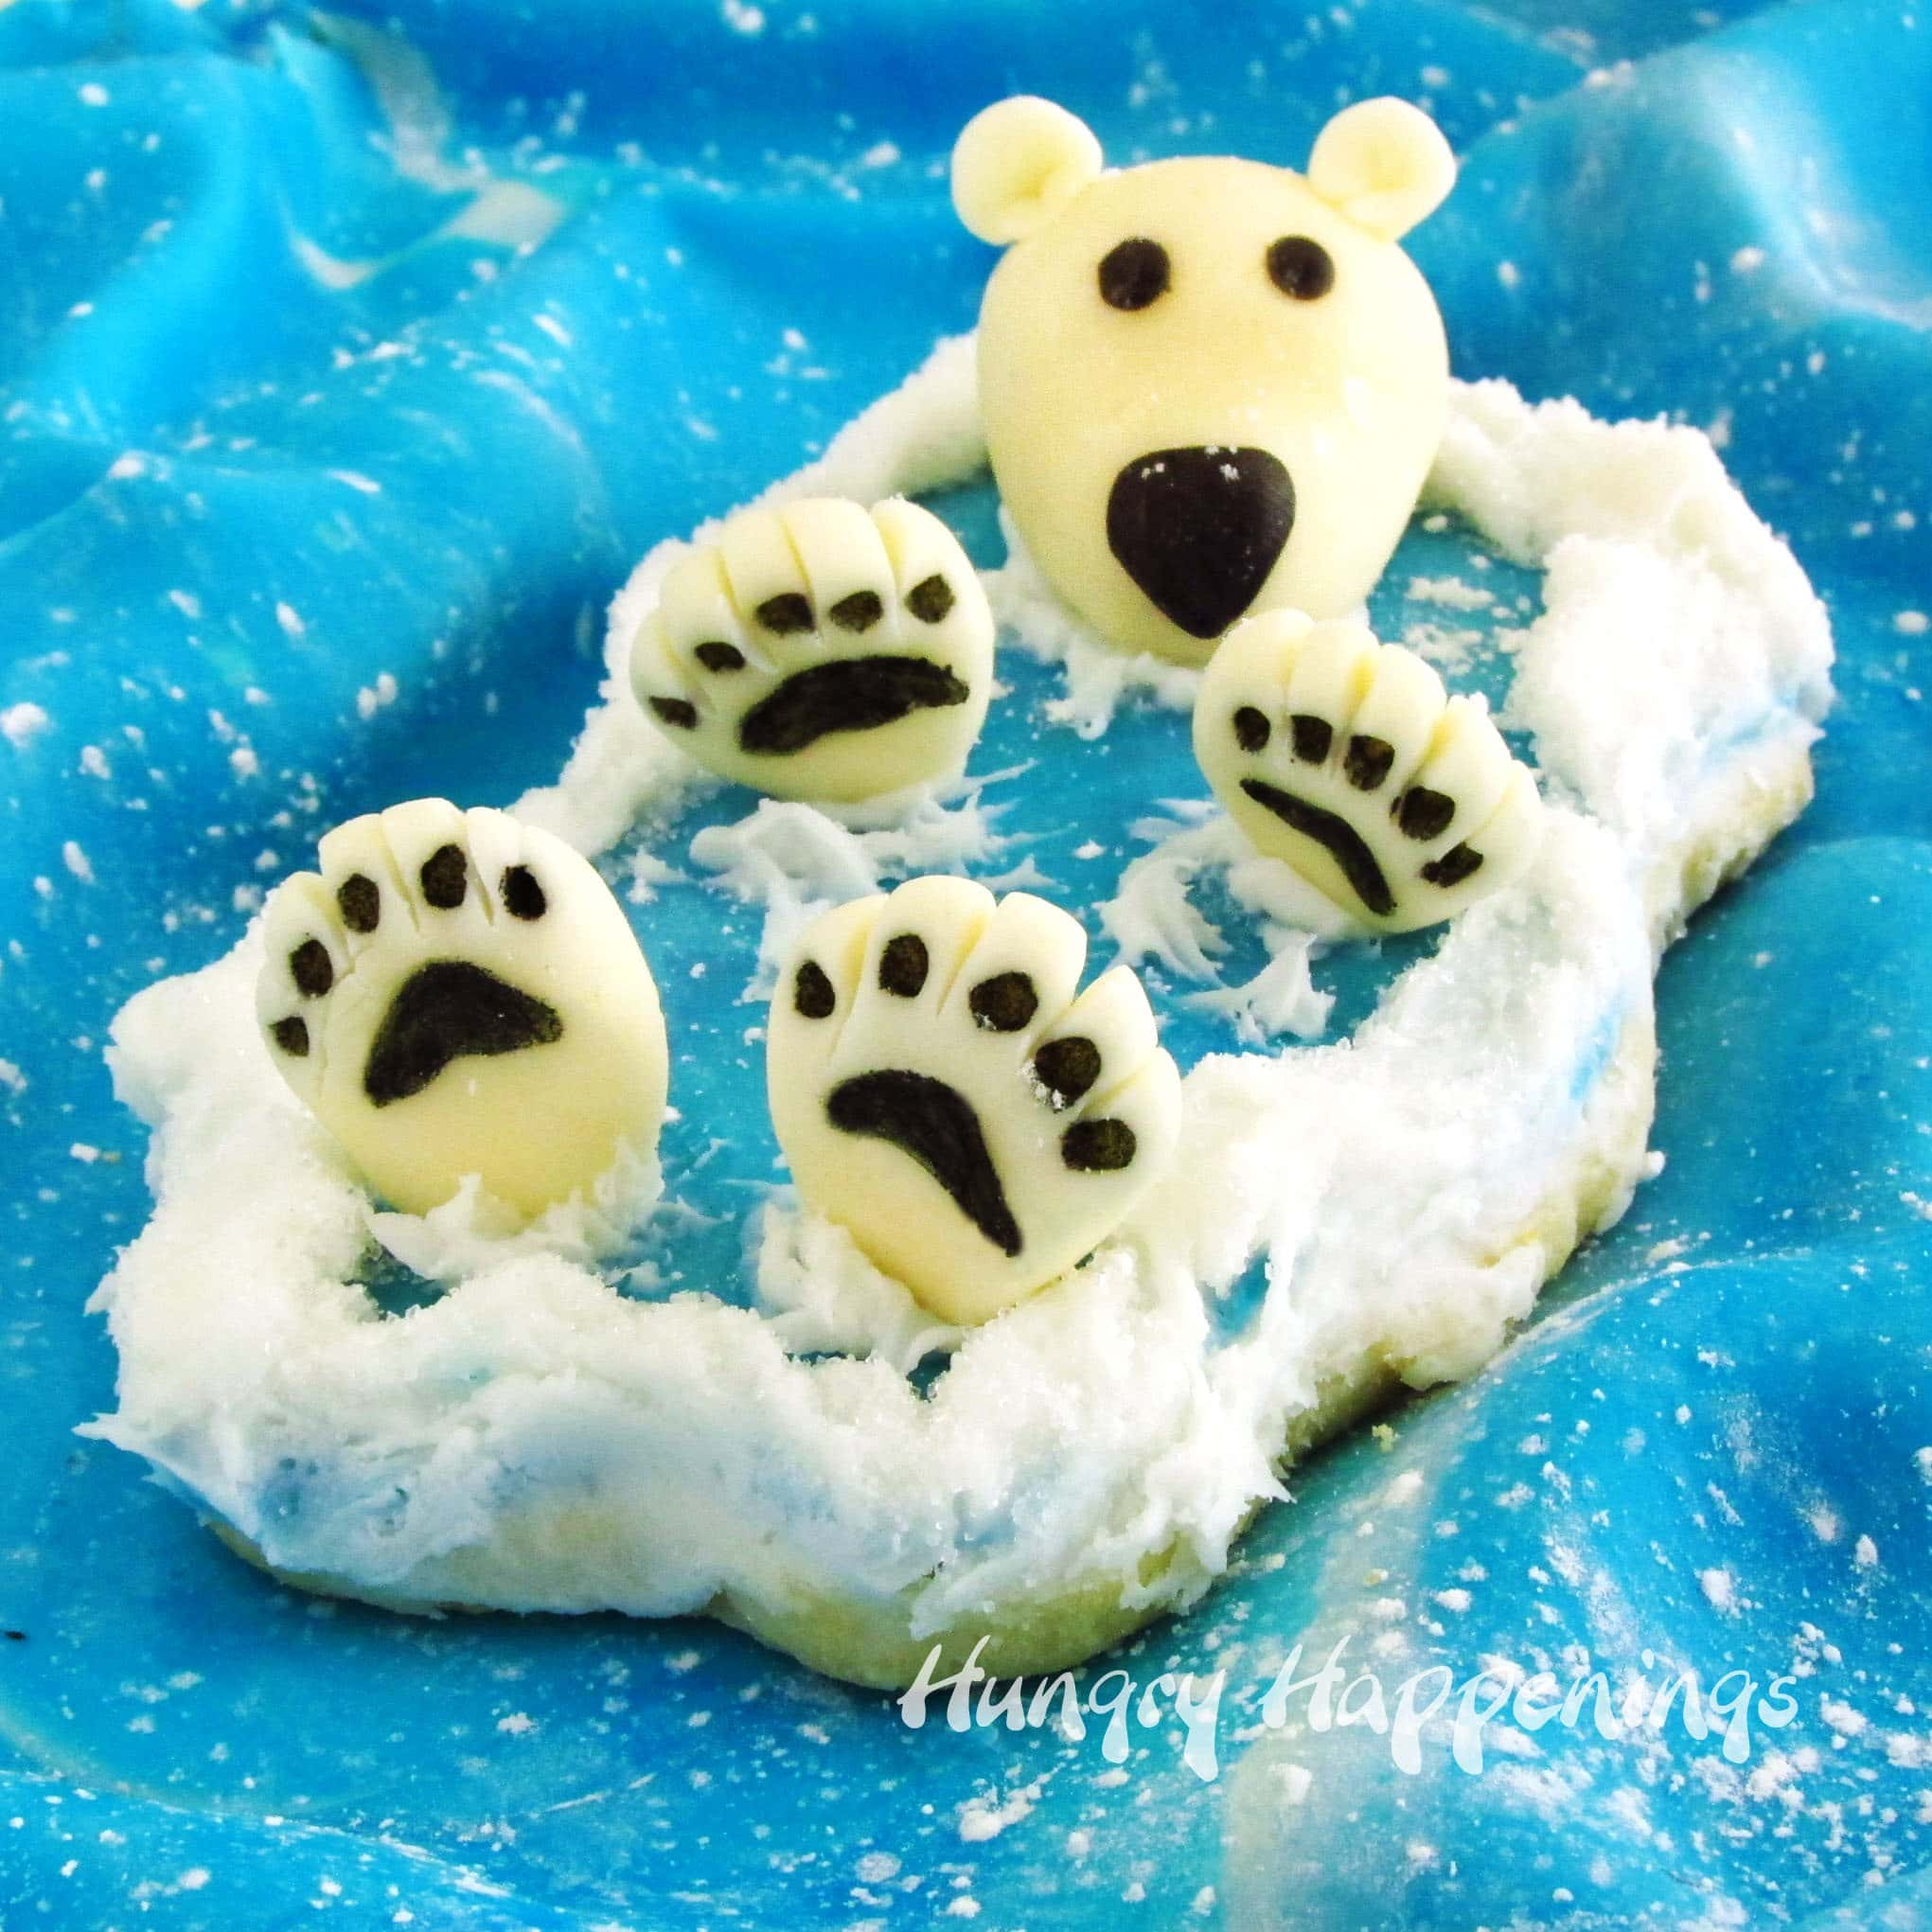 These polar bear cookies are so darn cute. Each has a 3 dimensional polar bear floating on it's back in a cookie ocean with it's big fluffy paws and head sticking up out of the modeling chocolate water.